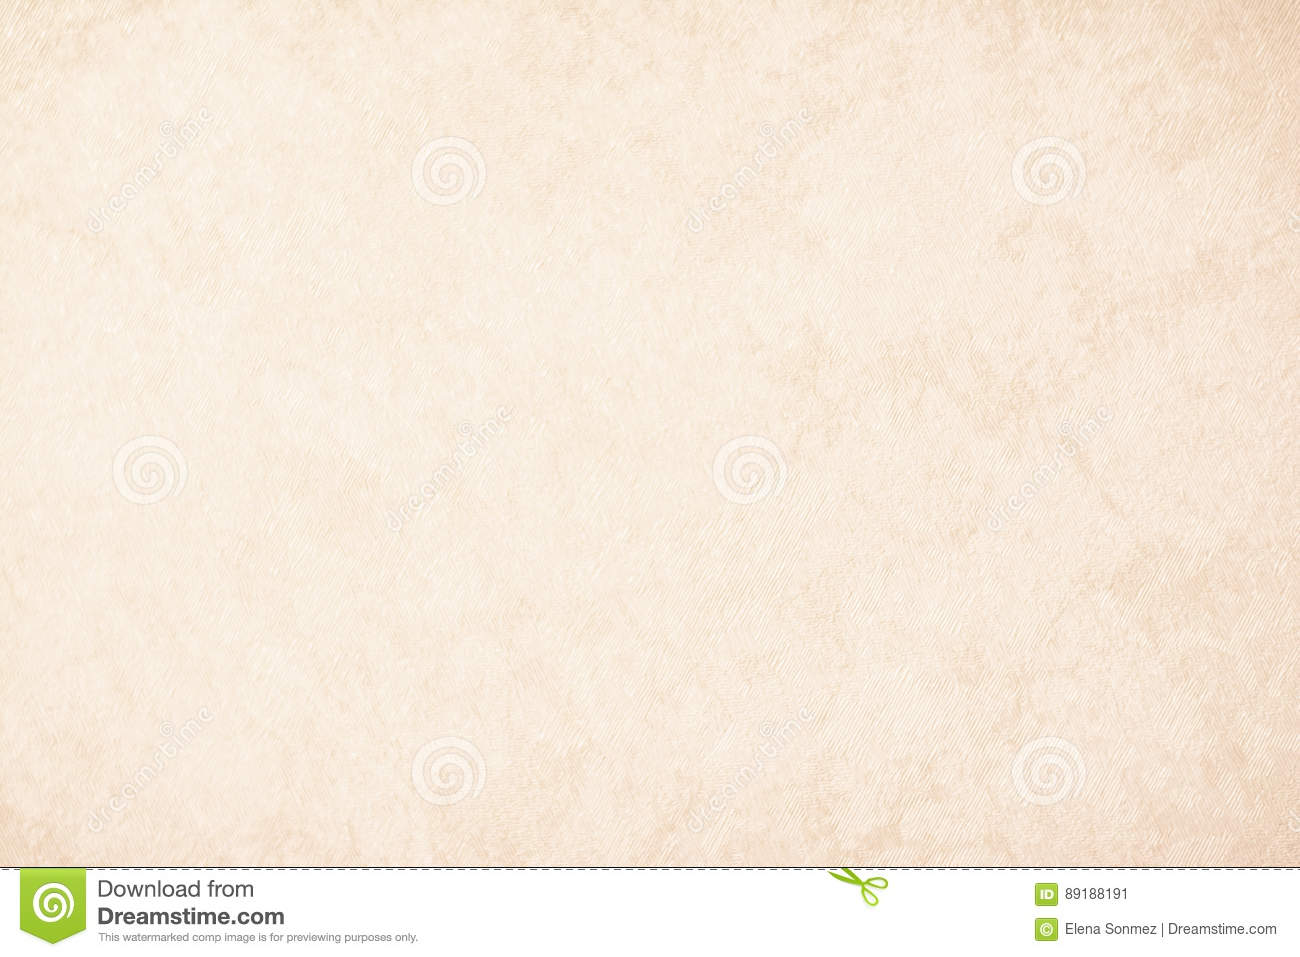 Cream texture background paper in beige vintage color, parchment paper, abstract pastel gold gradient with brown, solid